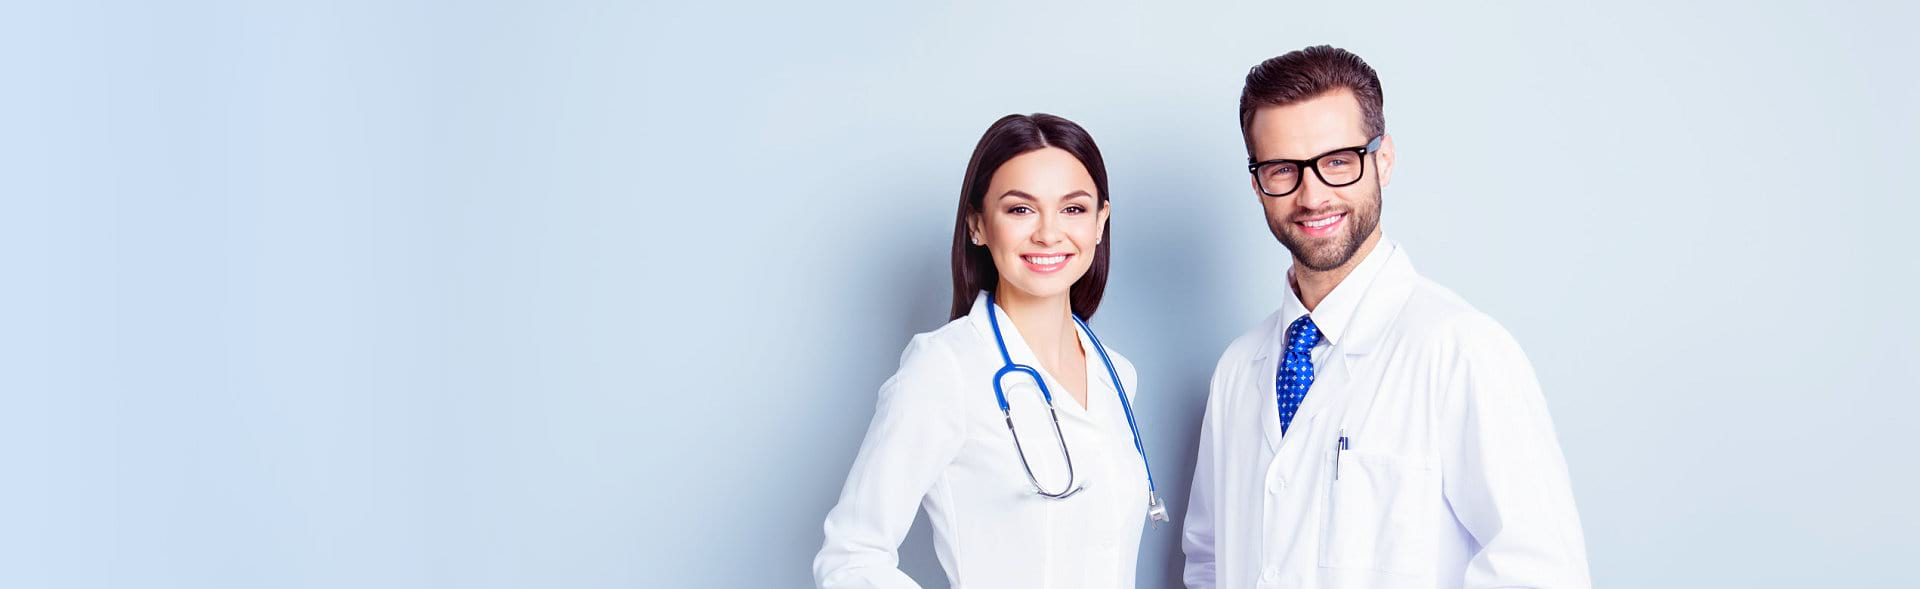 portrait of male doctor and female nurse